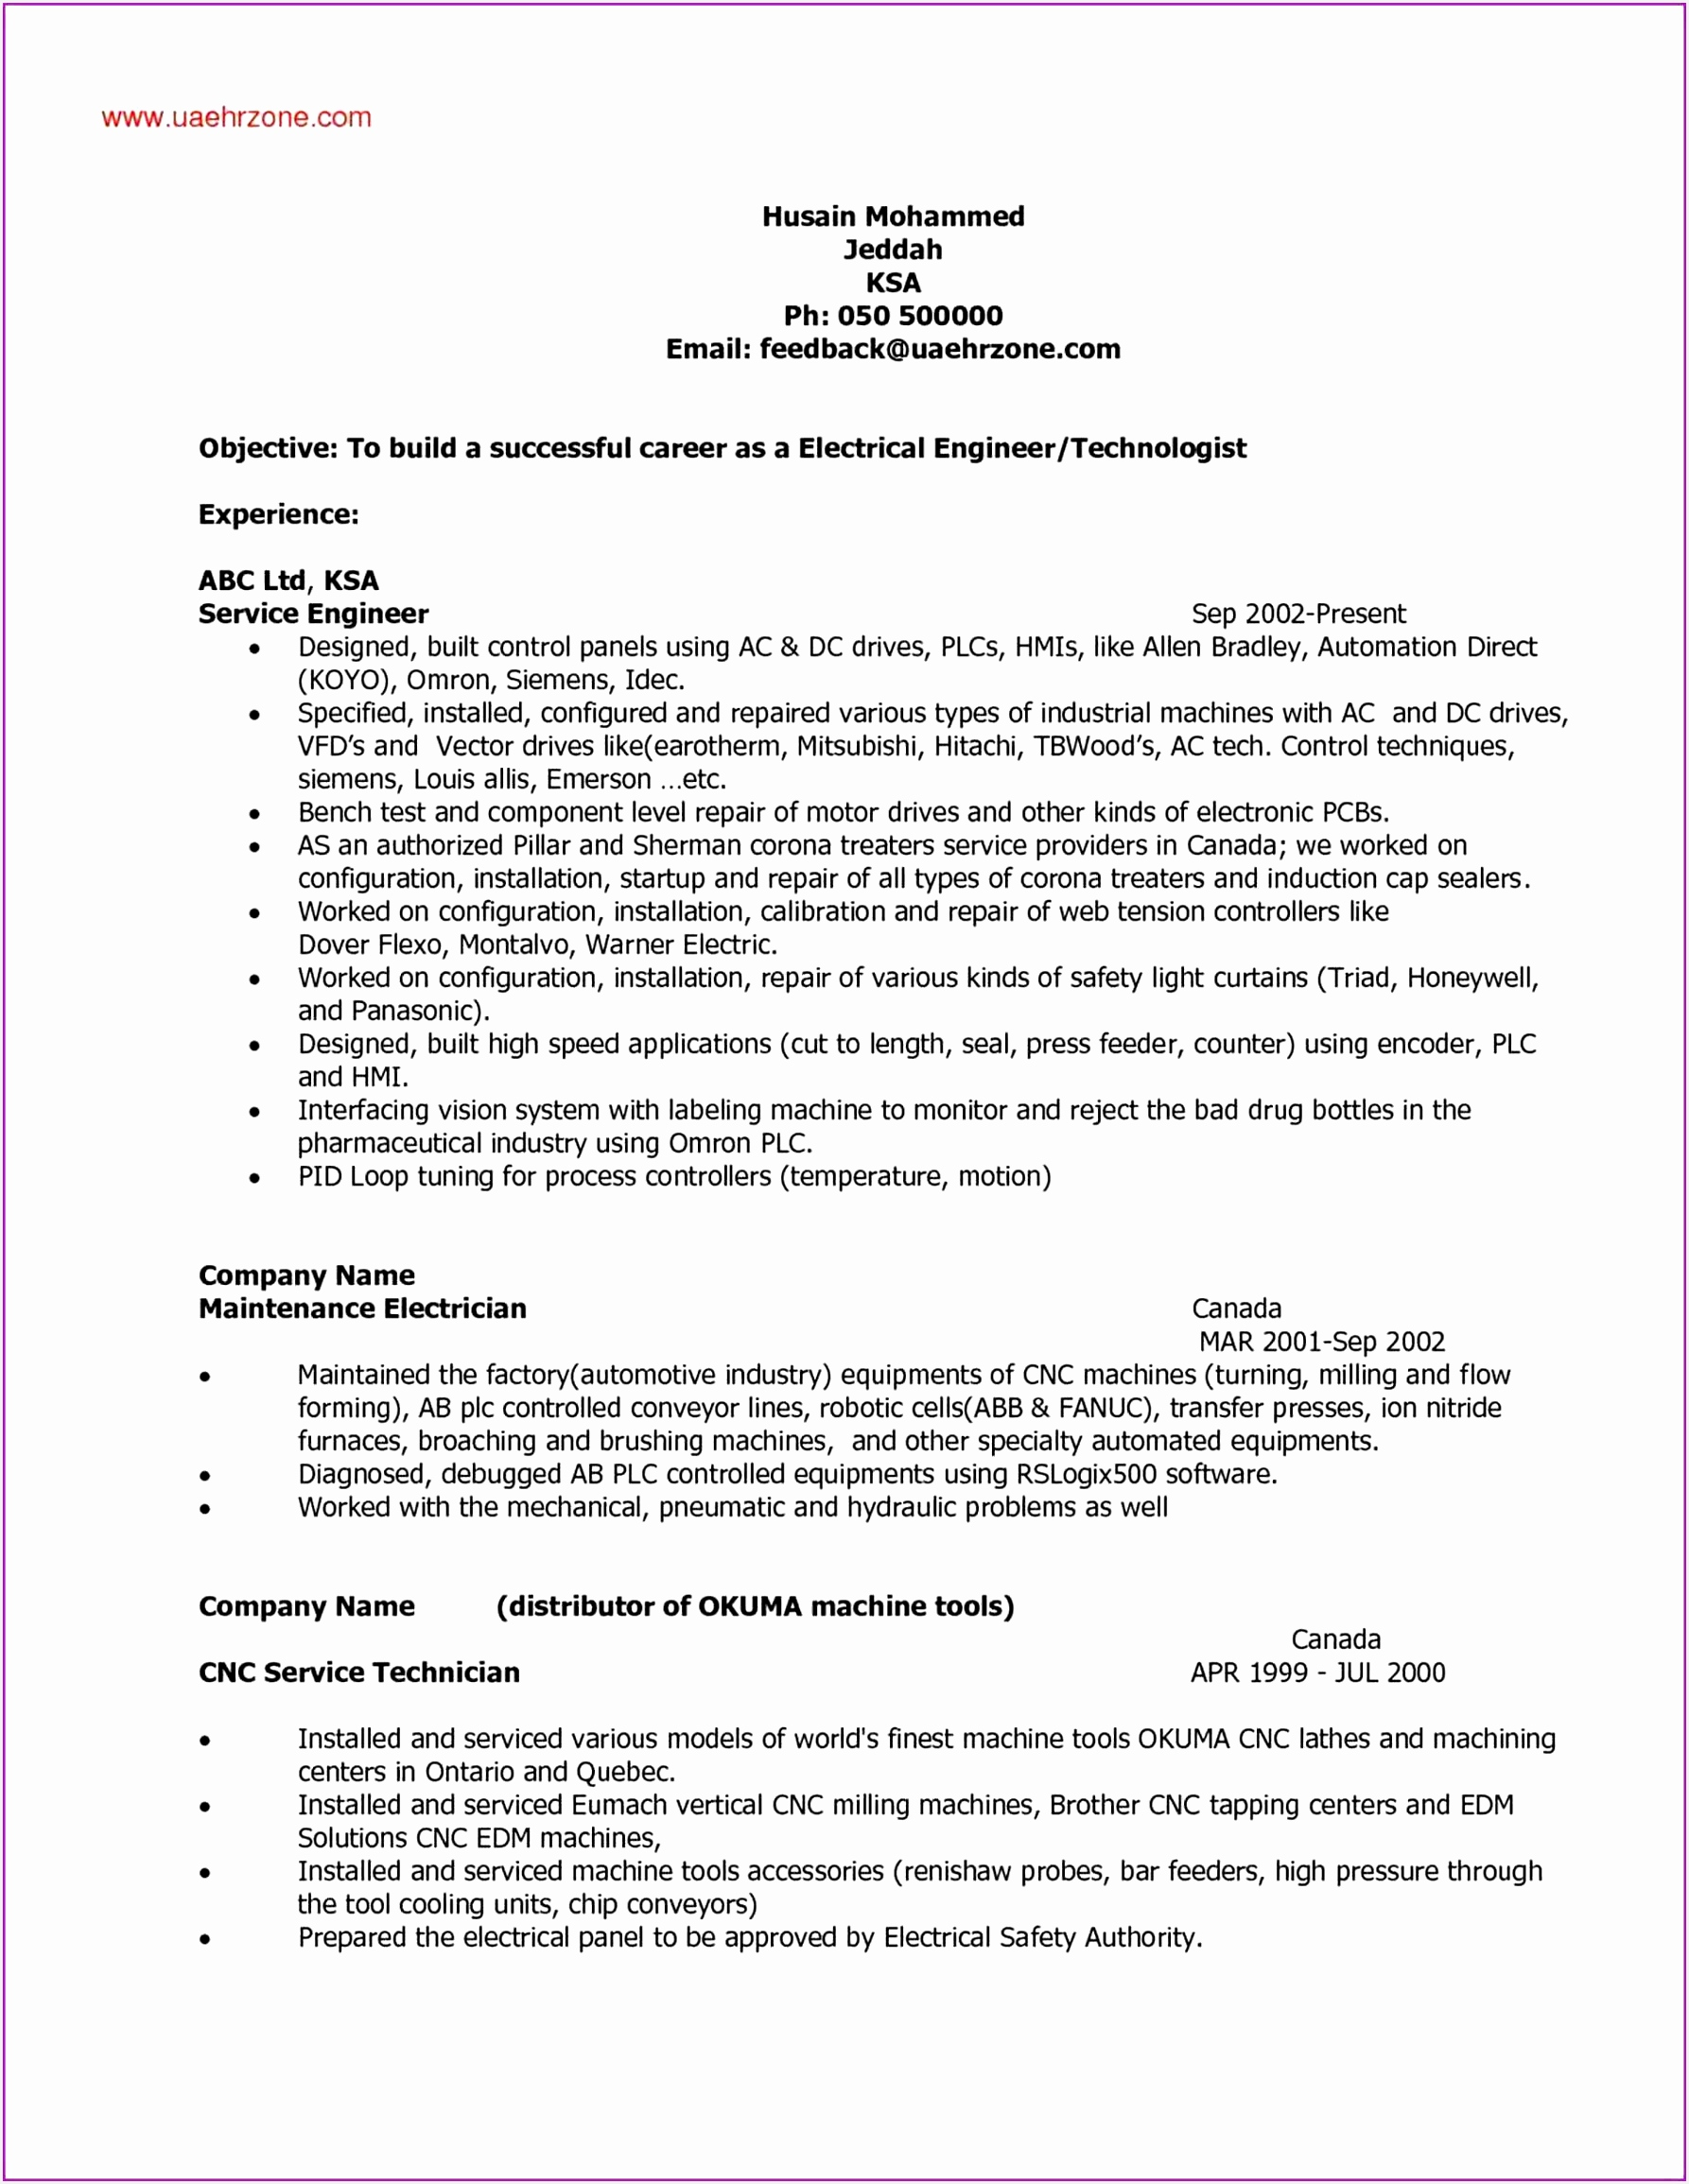 Contract Stress Engineer Sample Resume Baadl Best Of Mechanical Sample Resume Luxury Luxury How to Write A Proper Resume Of Contract Stress Engineer Sample Resume Cagkn Unique 42 Unique Resume format for Mechanical Engineering Students Pdf